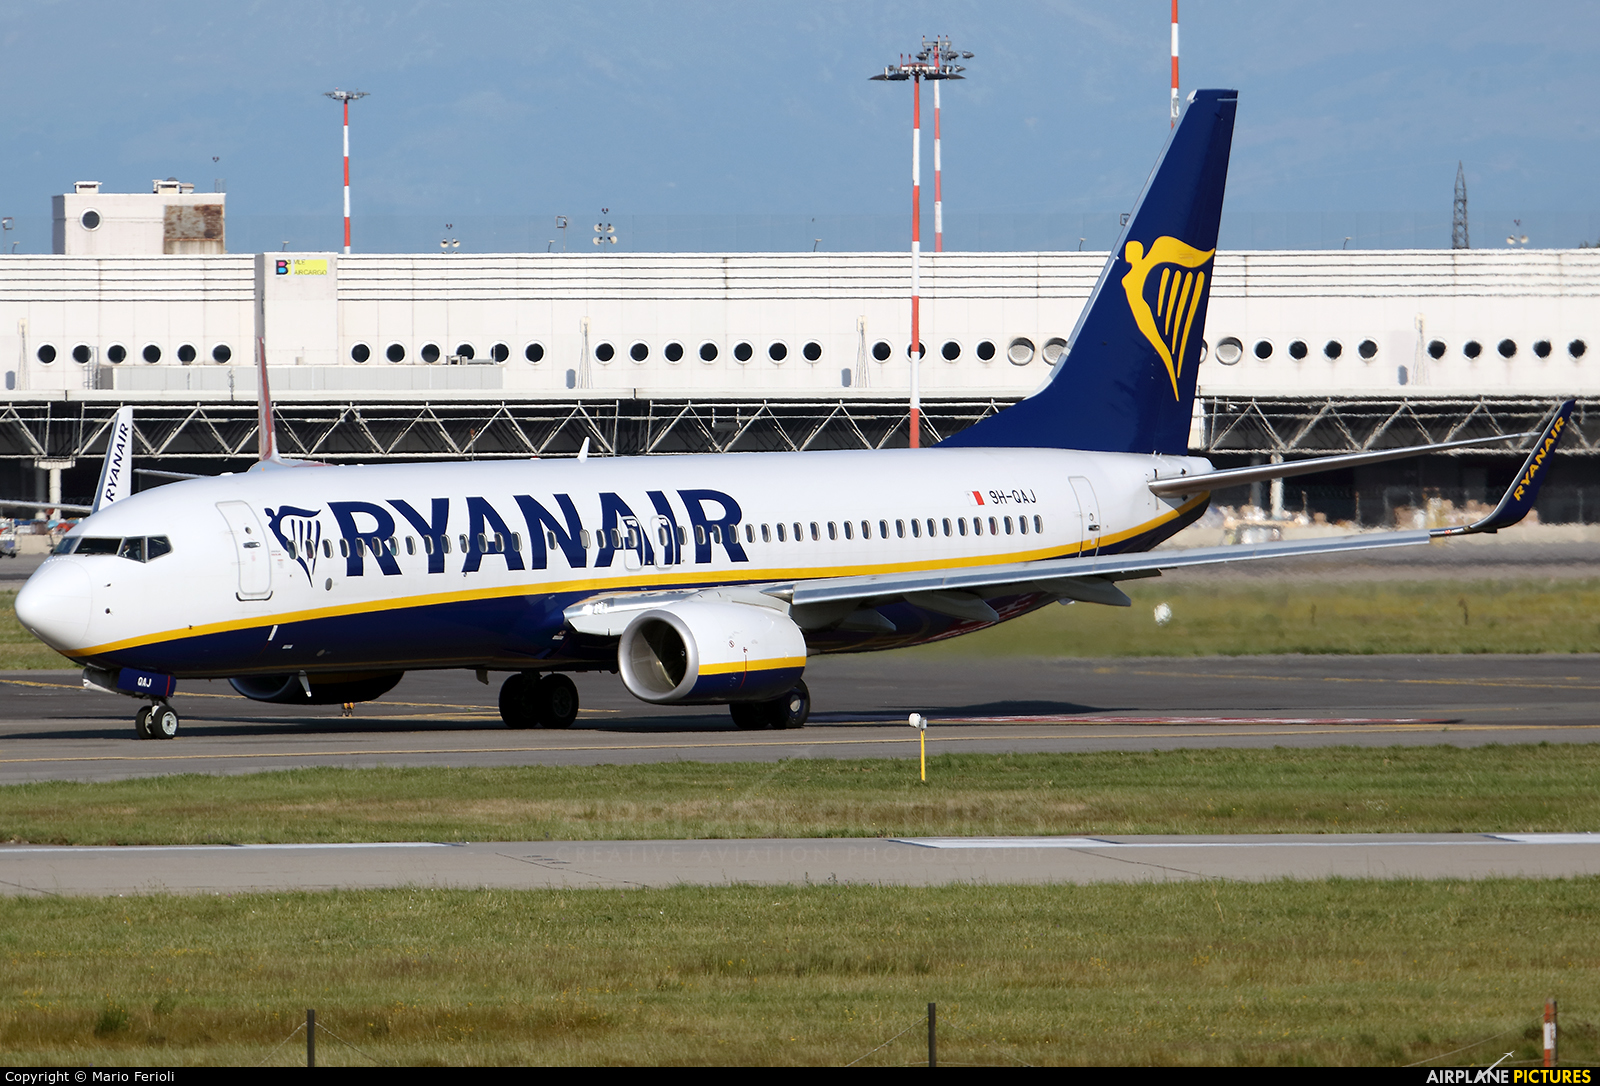 Ryanair (Malta Air) 9H-QAJ aircraft at Milan - Malpensa